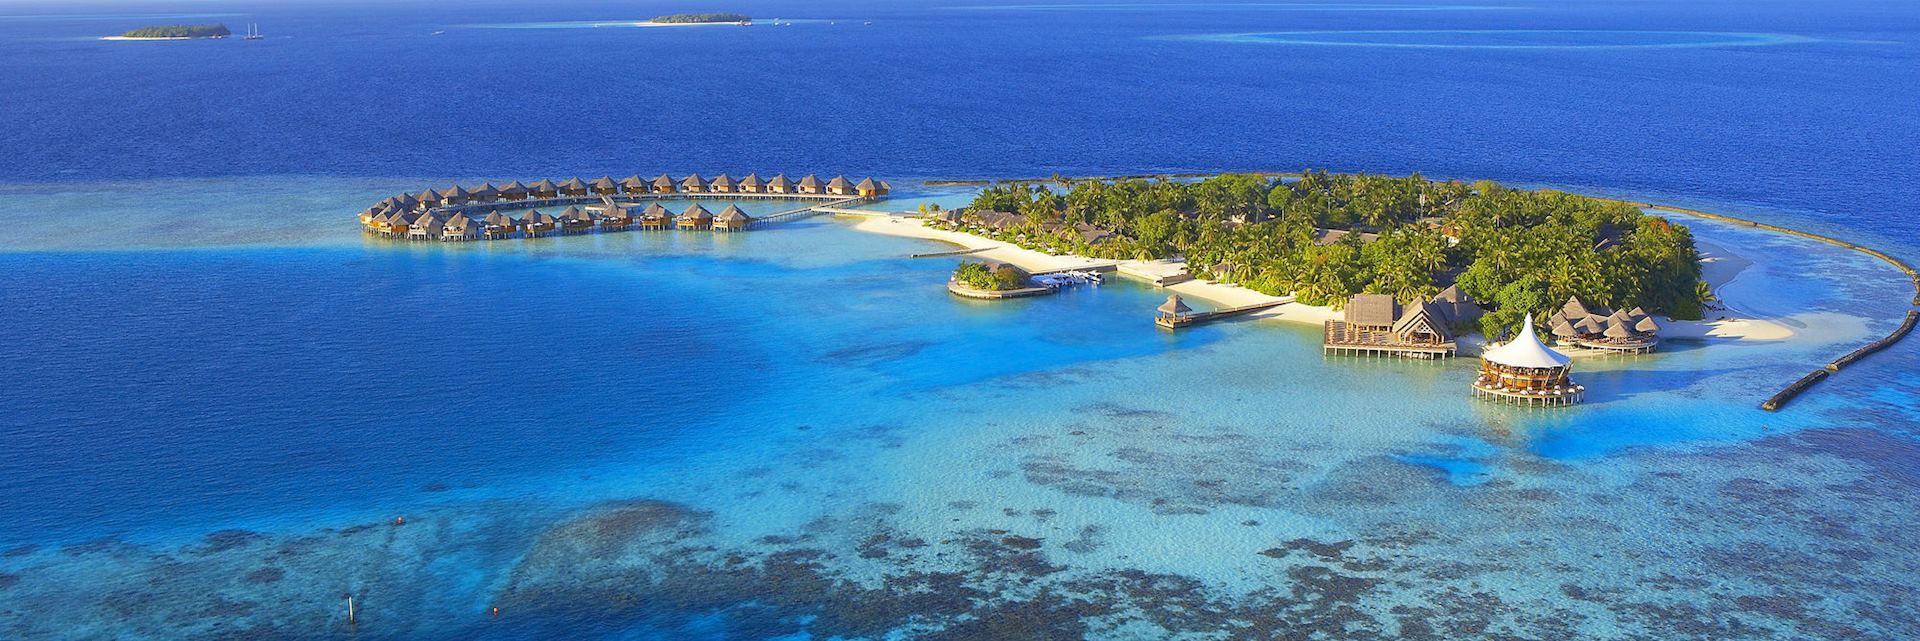 The Baros resort in the Maldives